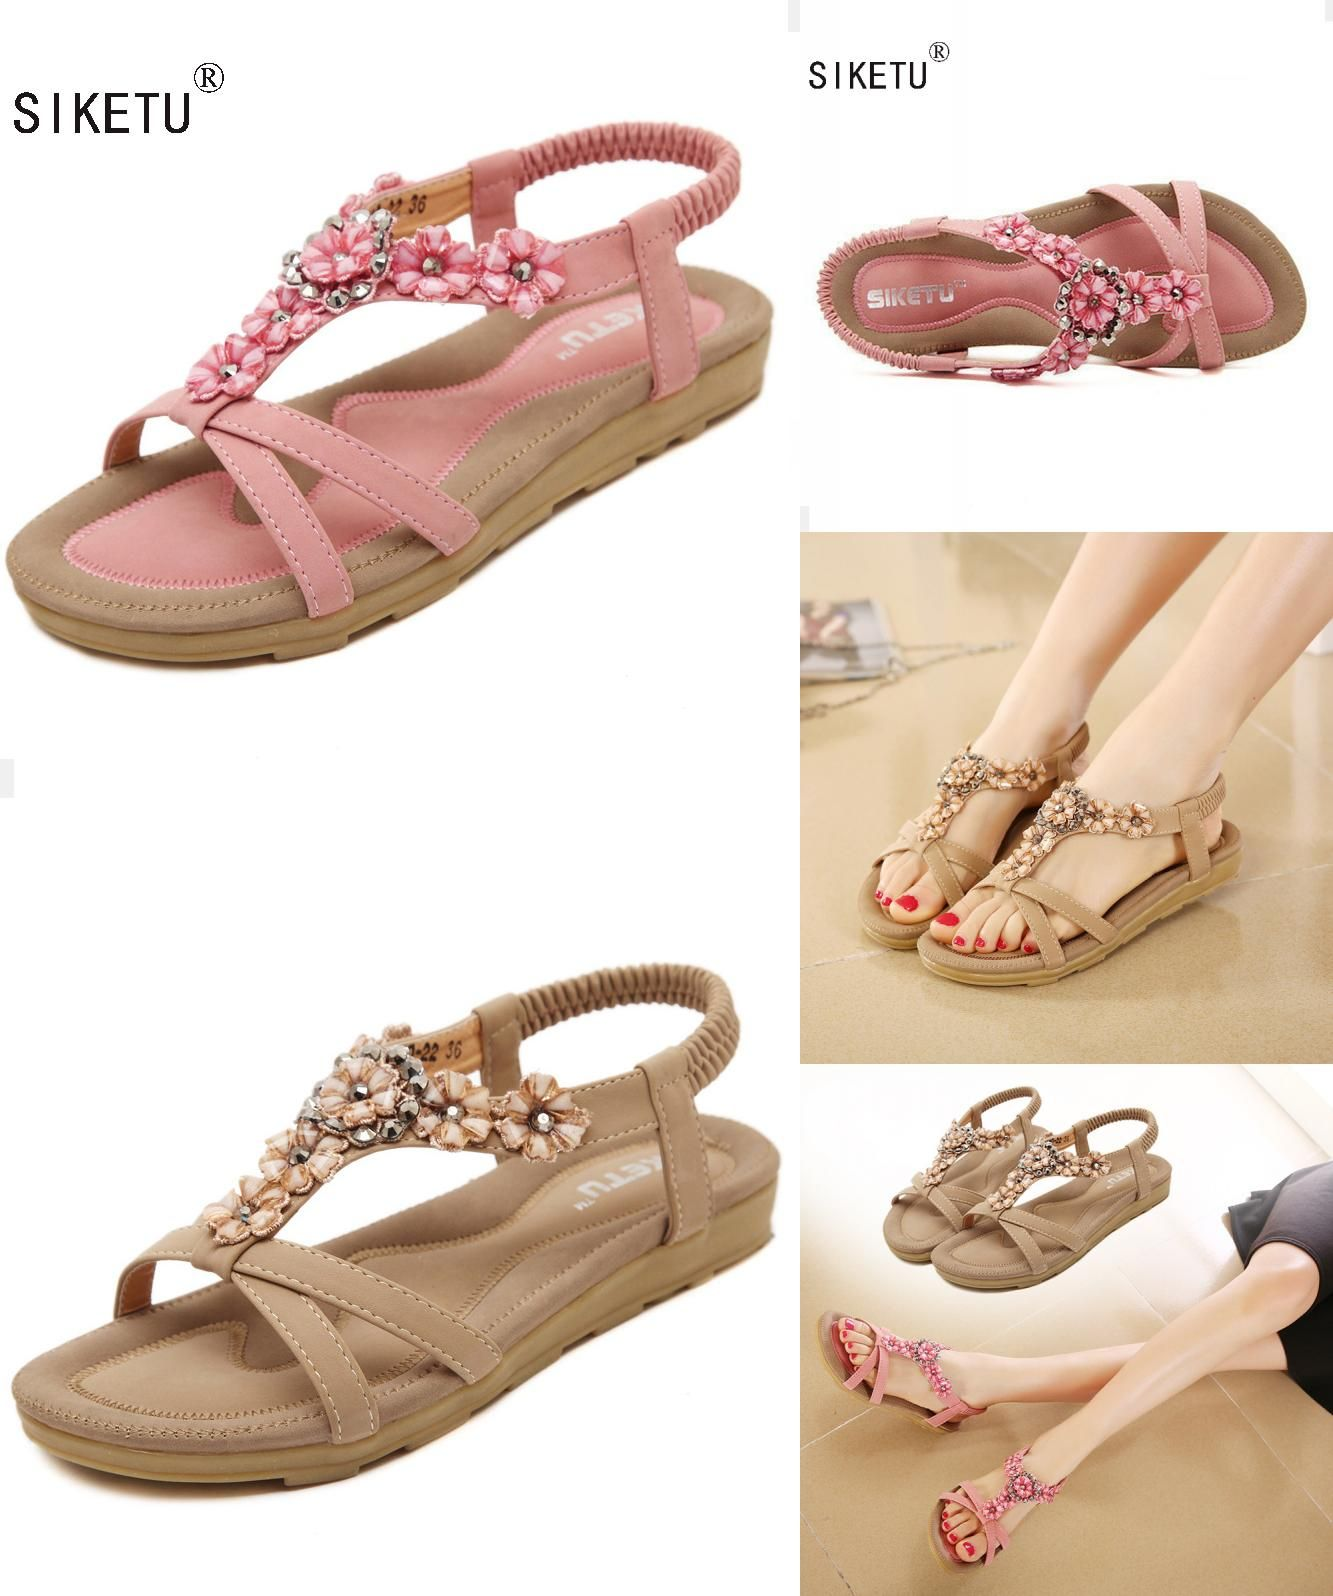 b55ad54265a0  Visit to Buy  SIKETU Summer Women Sandals 2017 Gladiator Sandals Women  Shoes Bohemia Flat